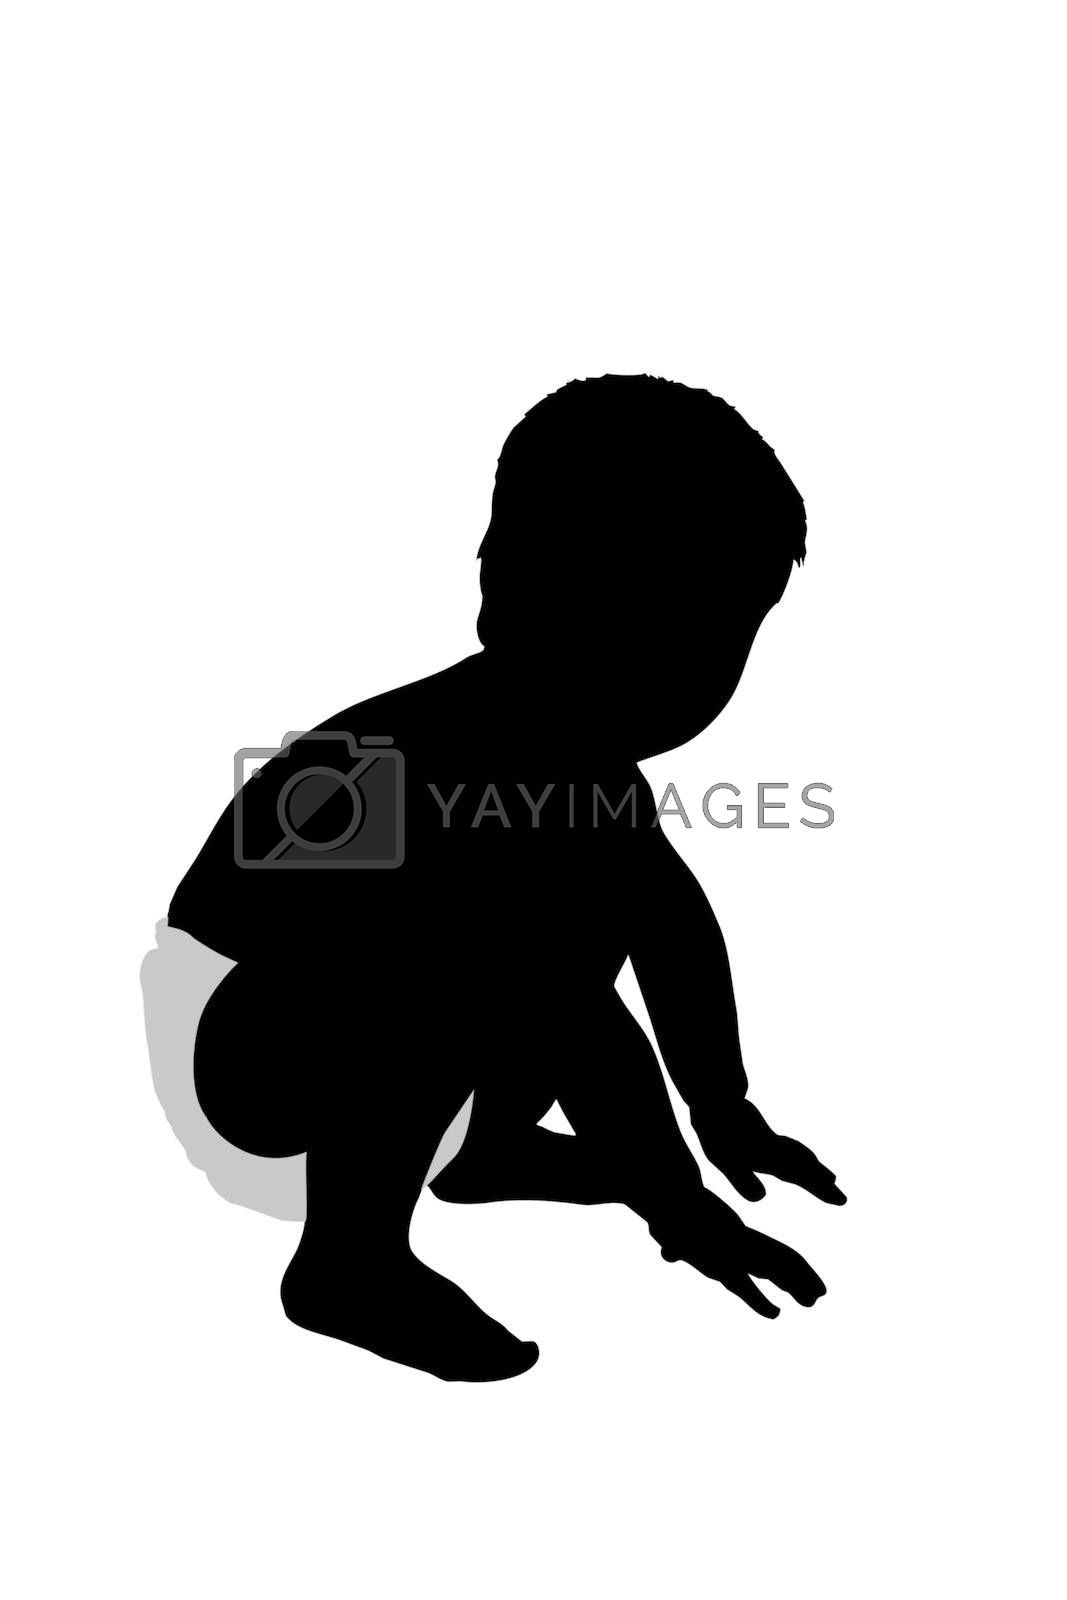 Toddler Silhouette Illustration by travismanley